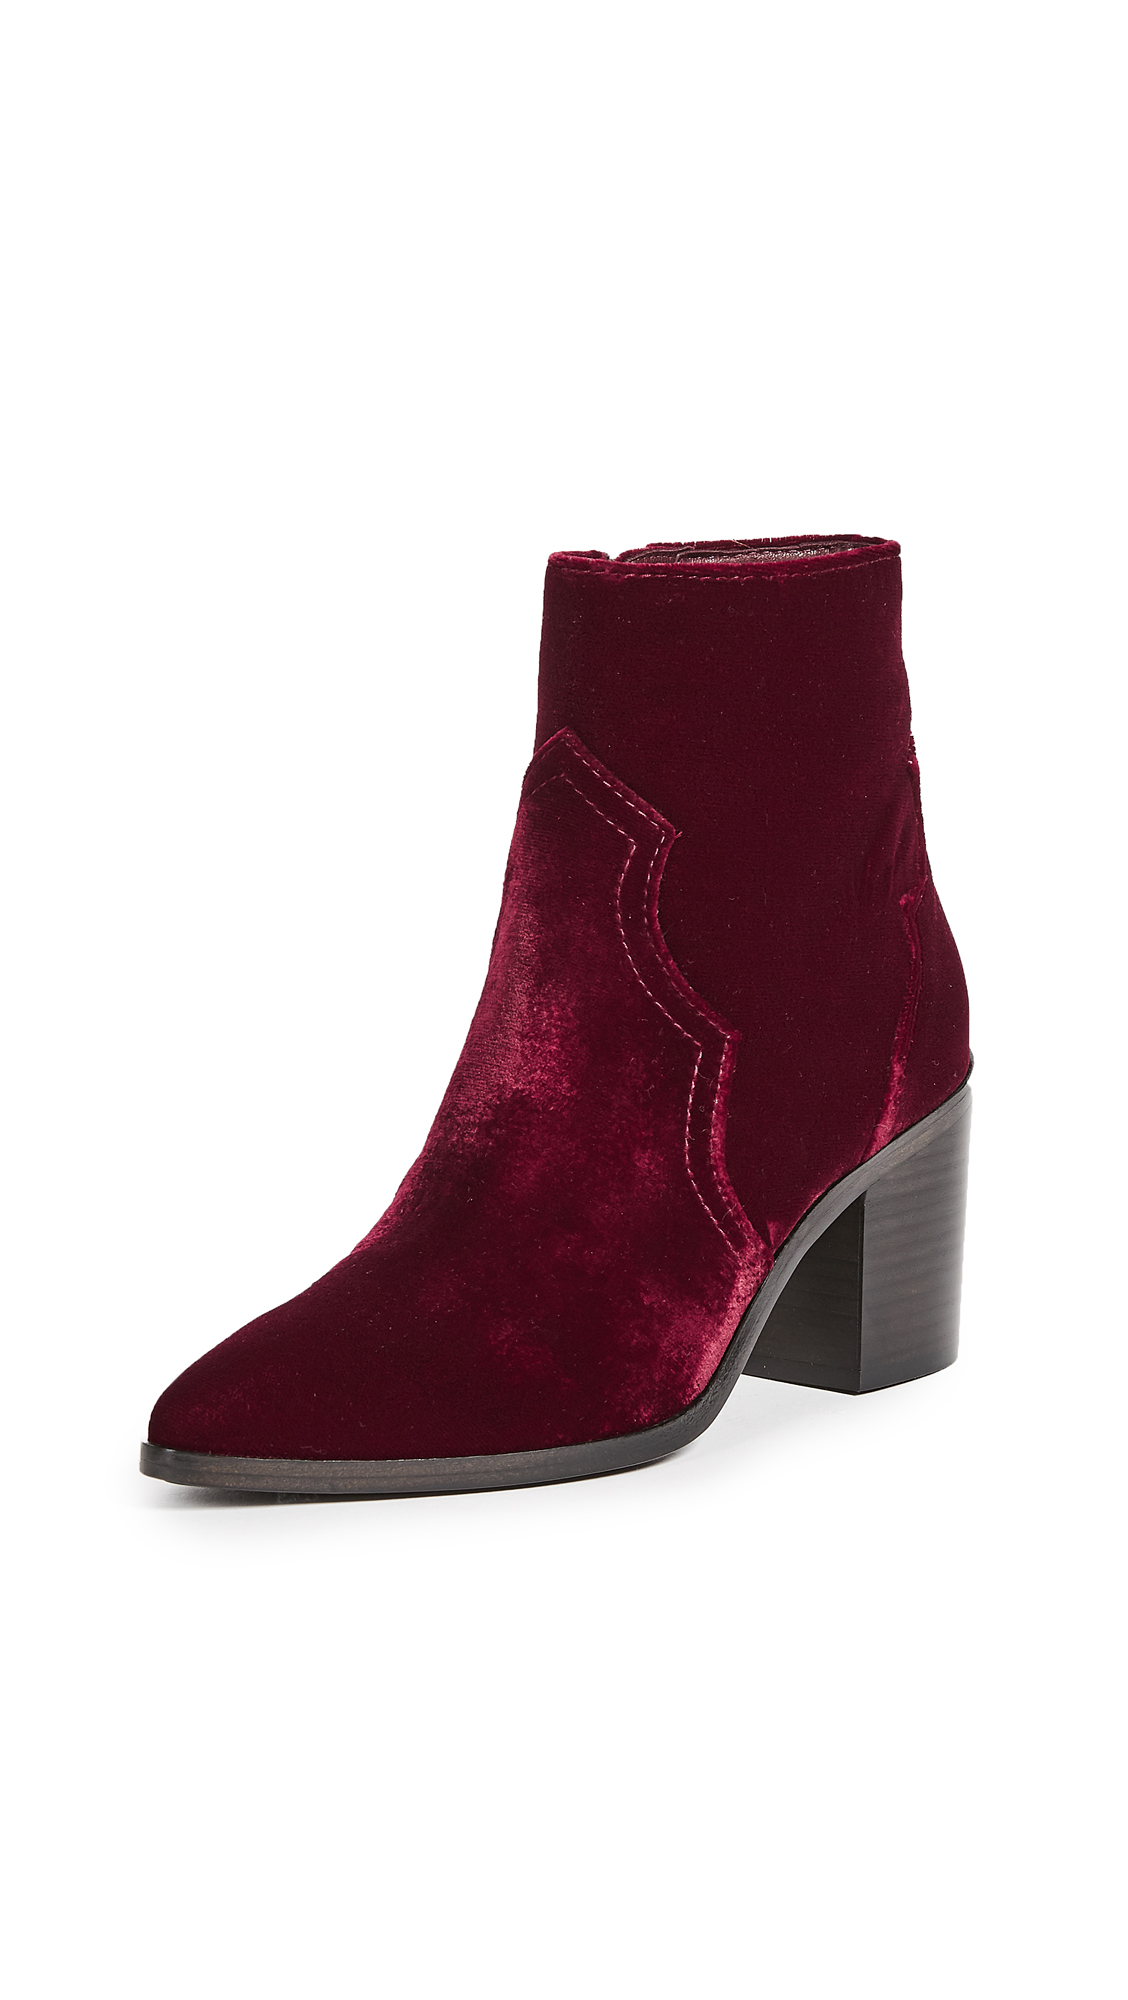 Frye Flynn Short Inside Zip Booties - Wine